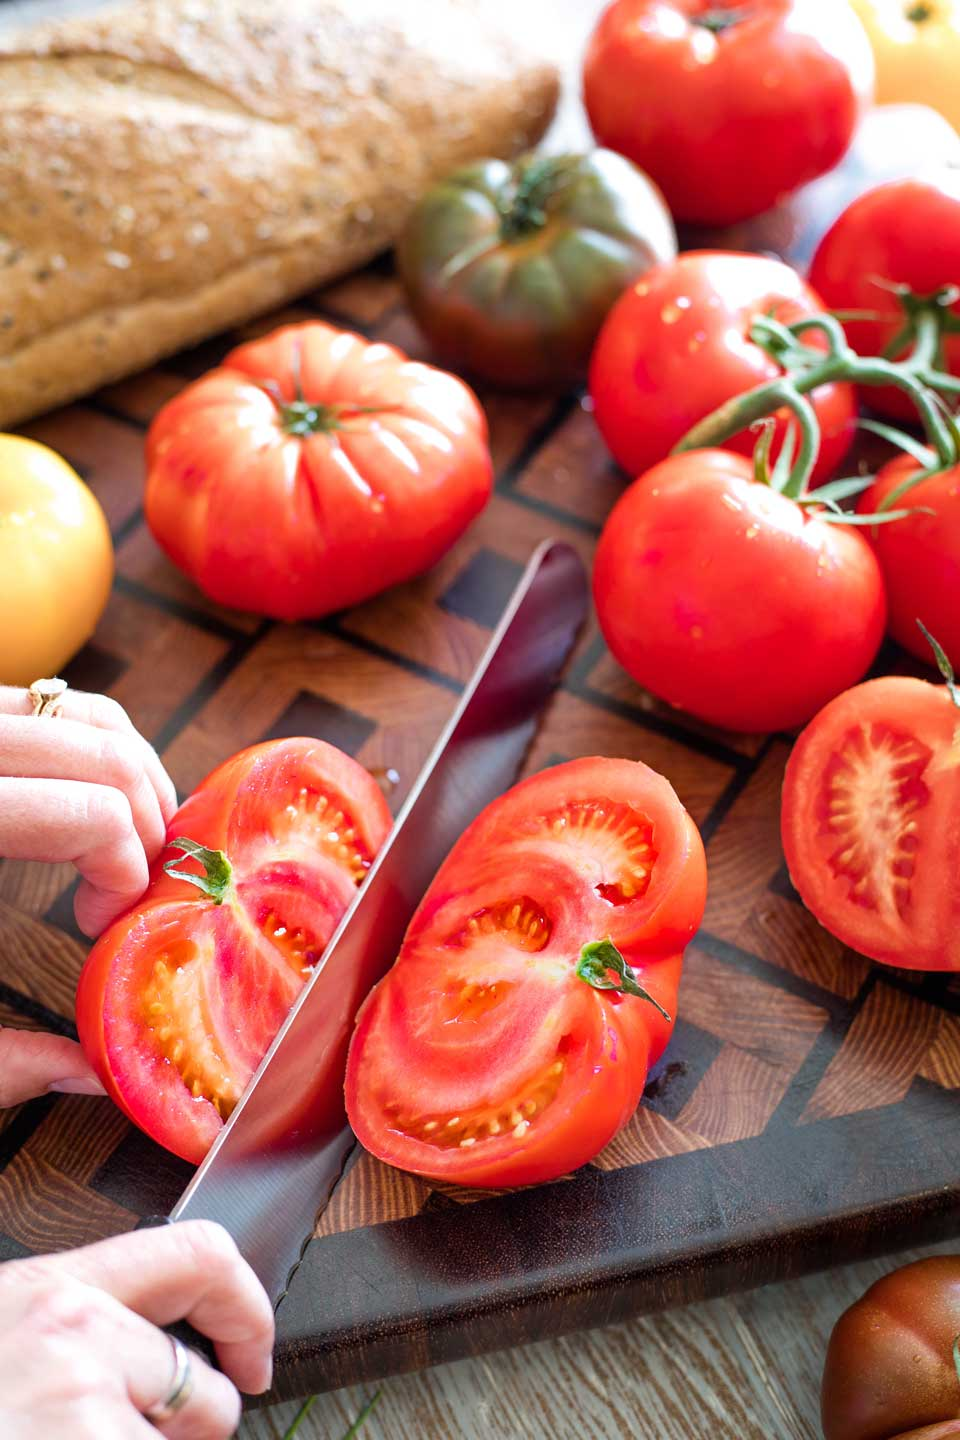 serrated knife slicing through tomato on cutting board, surrounded by other tomatoes